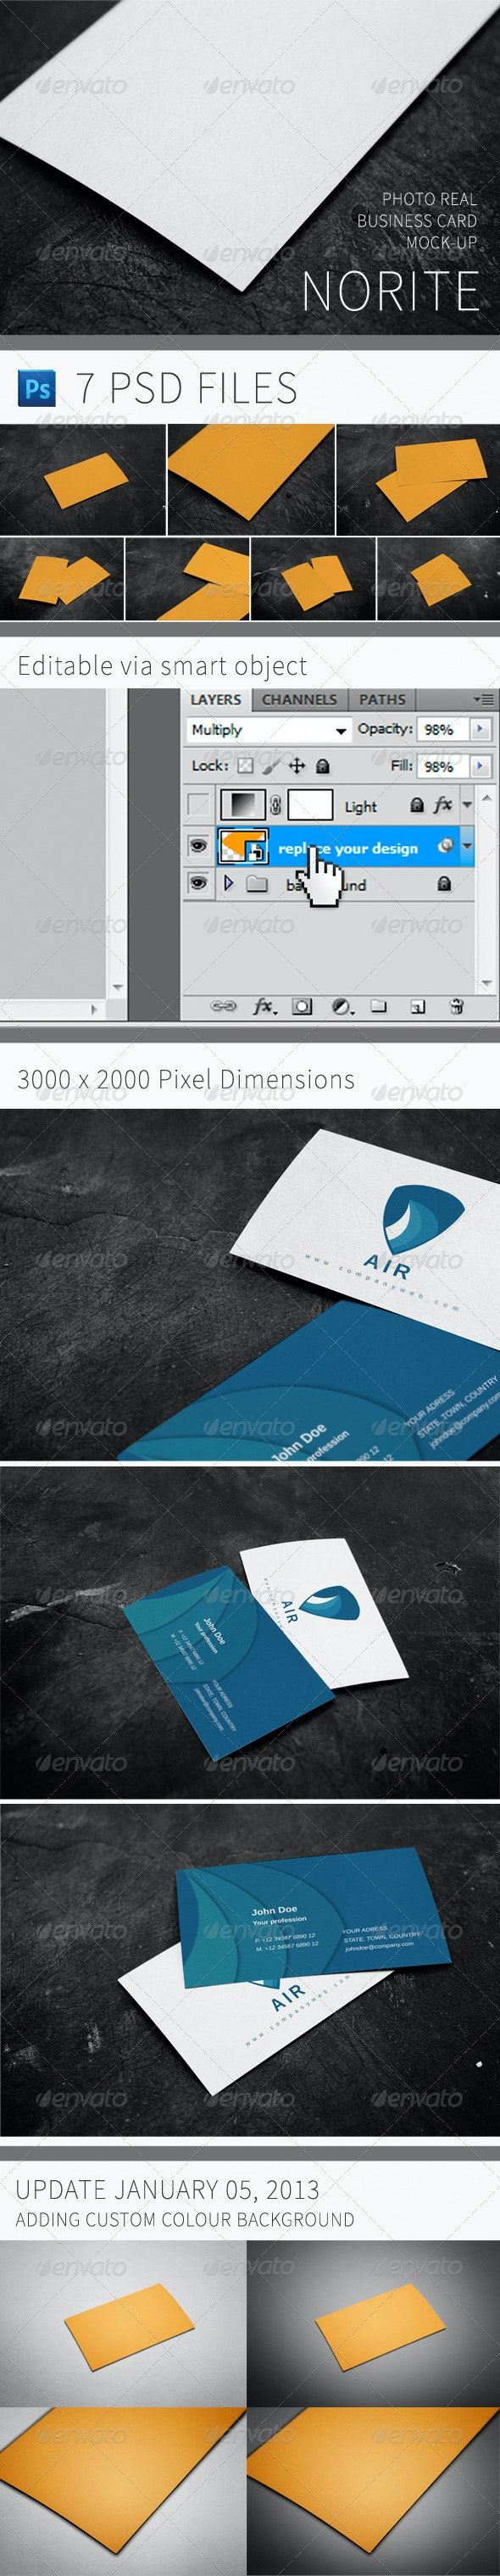 Norite - Photo Real Business Card Mock-up - Business Cards Print